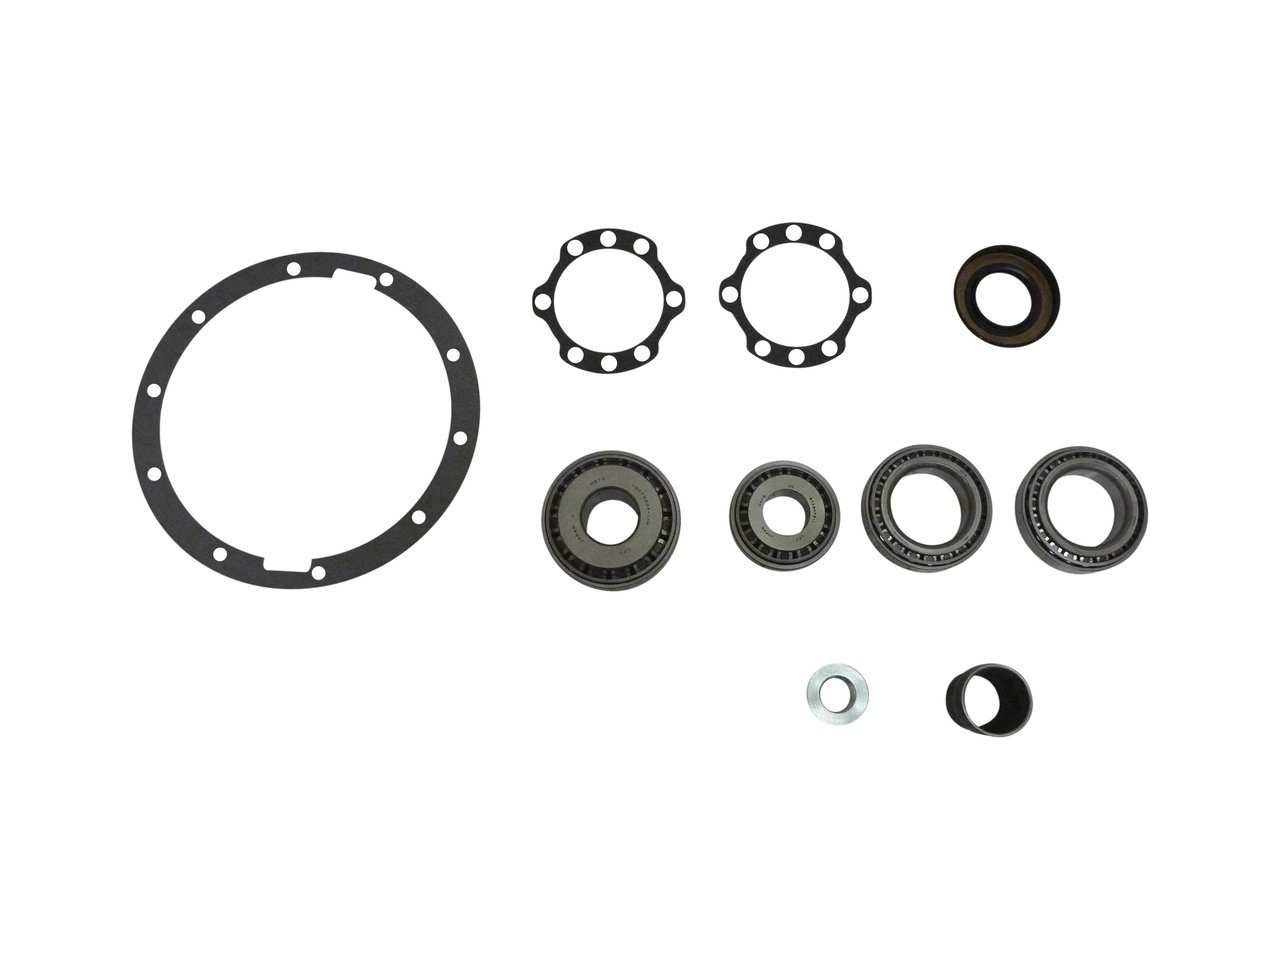 Rear Differential Bearing Kit suitable for Hilux